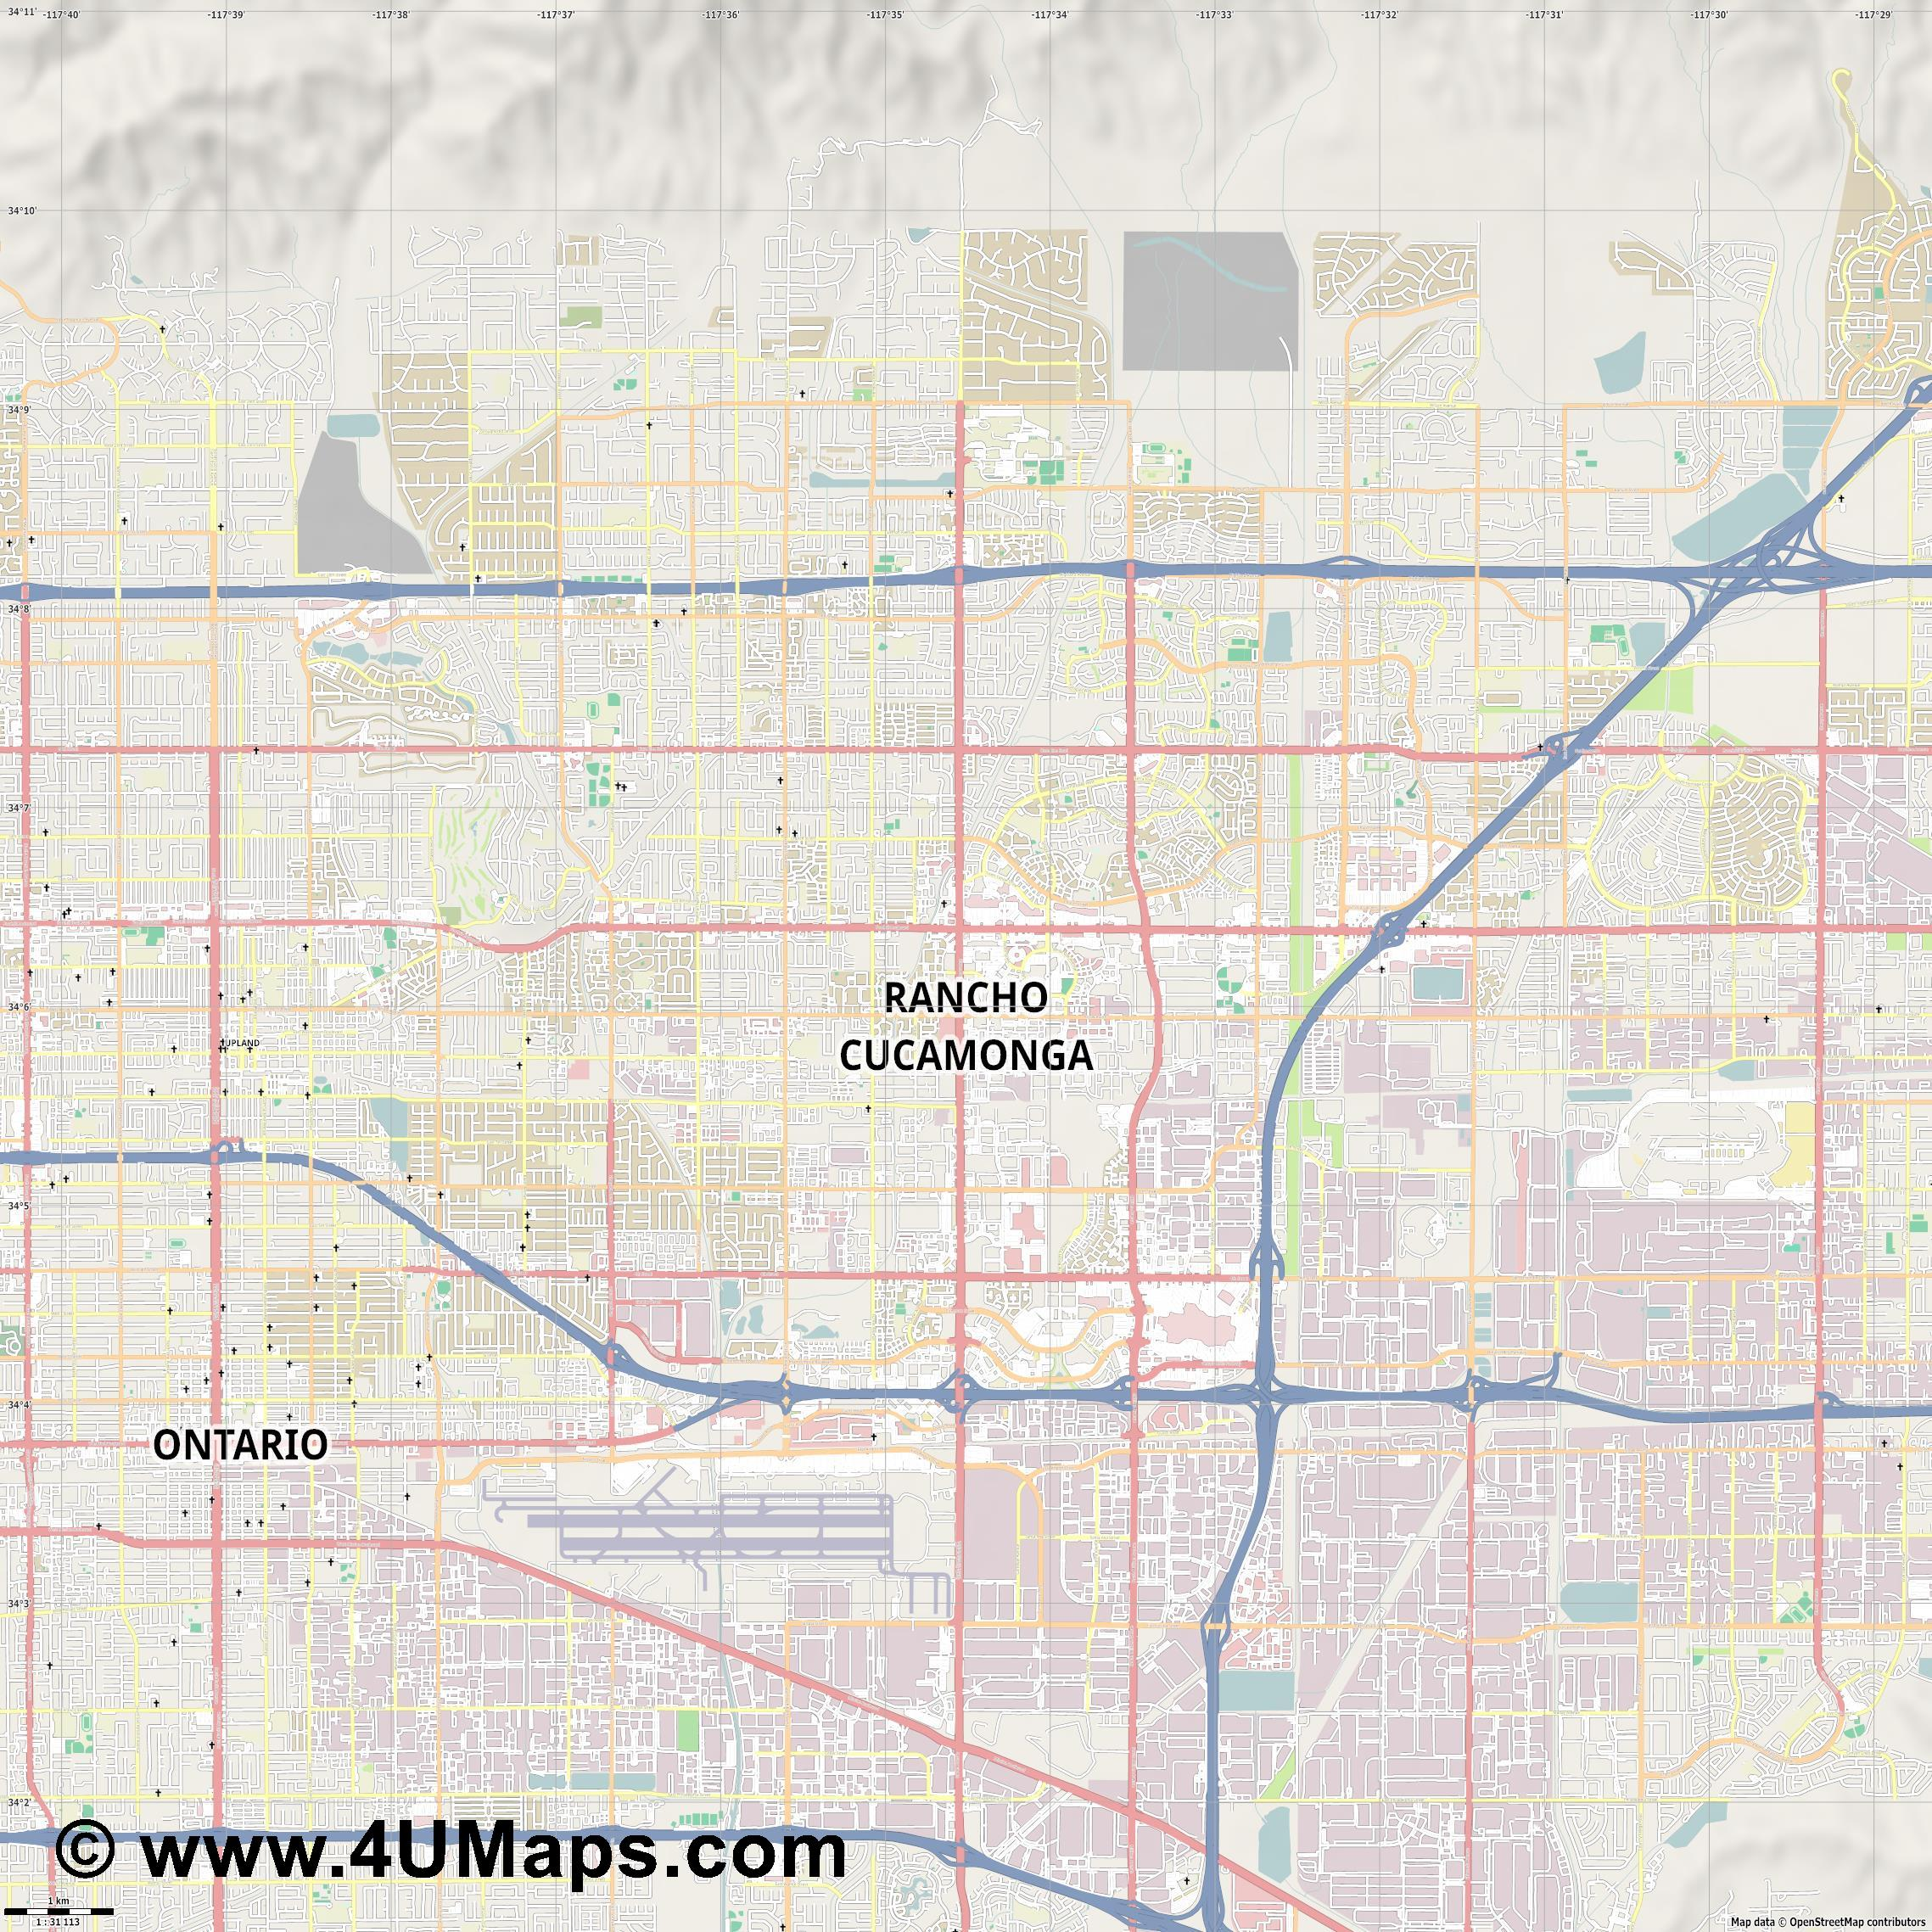 Rancho Cucamonga  jpg high detail, large area preview vector city map